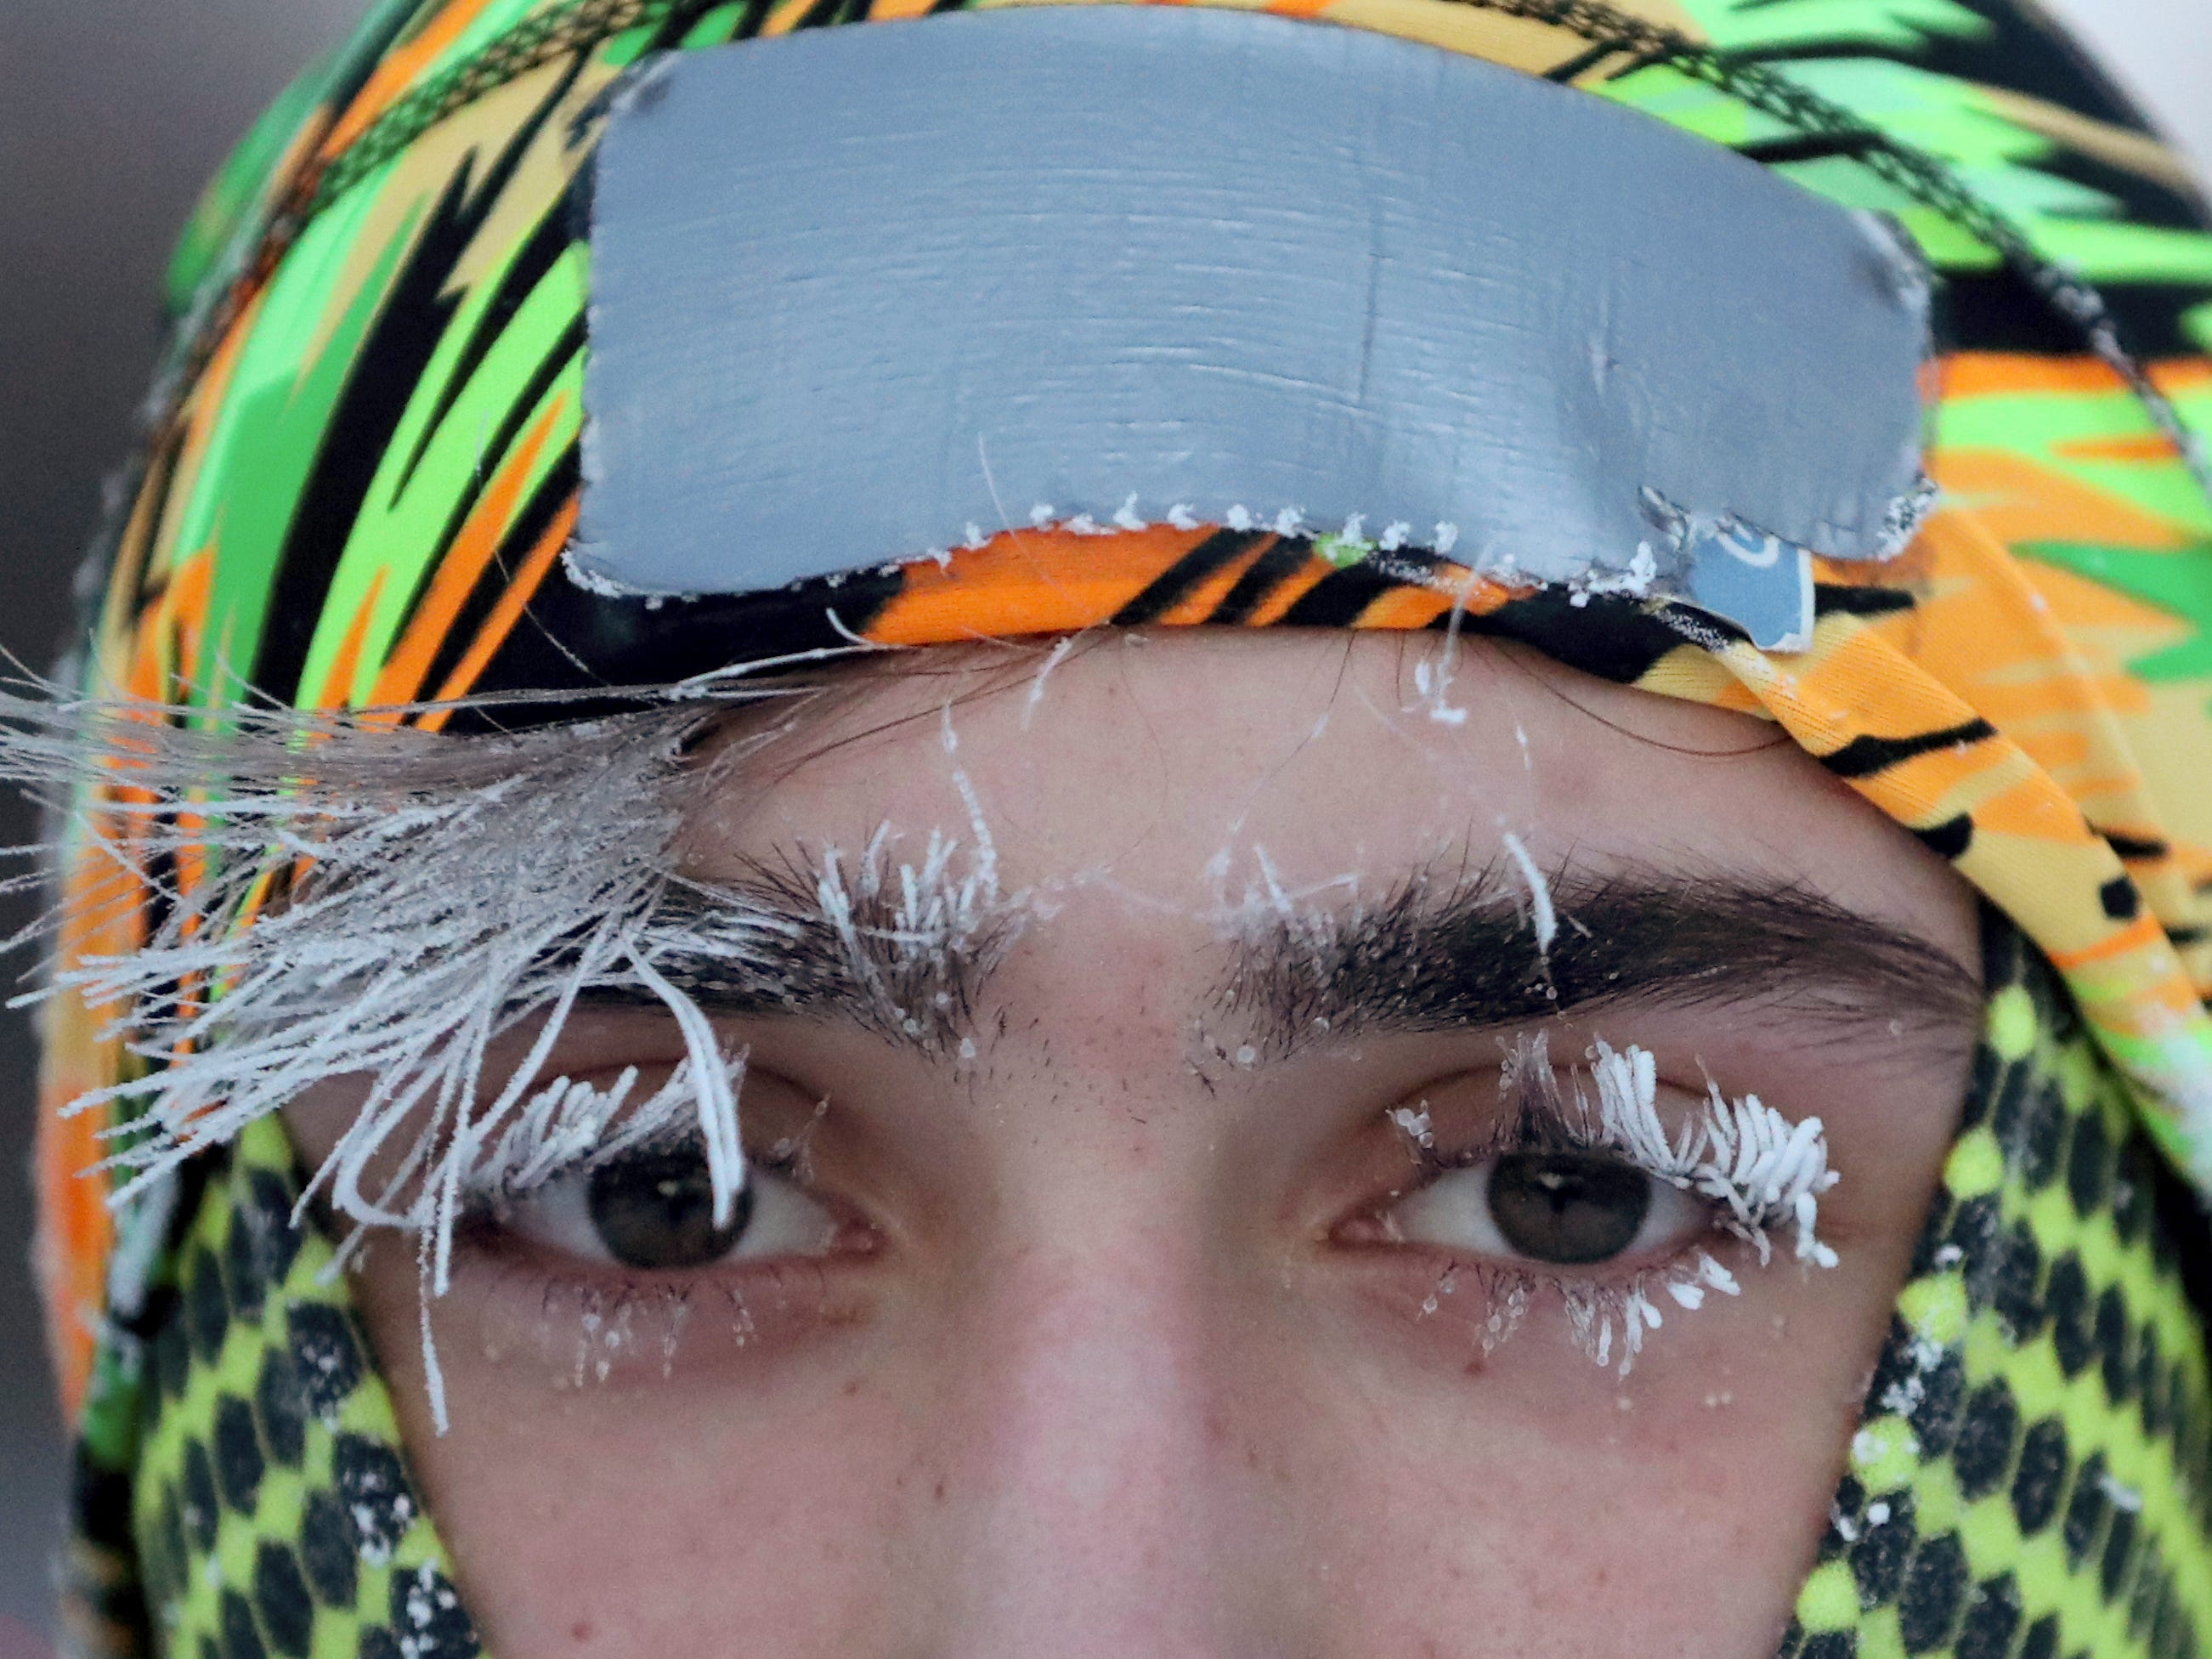 Frost covers part of the face of University of Minnesota student Daniel Dylla during a morning jog along Mississippi River Jan. 29, 2019, In Minneapolis. Extreme cold and record-breaking temperatures are crawling into parts of the Midwest after a powerful snowstorm pounded the region, and forecasters warn that the frigid weather could be life-threatening.